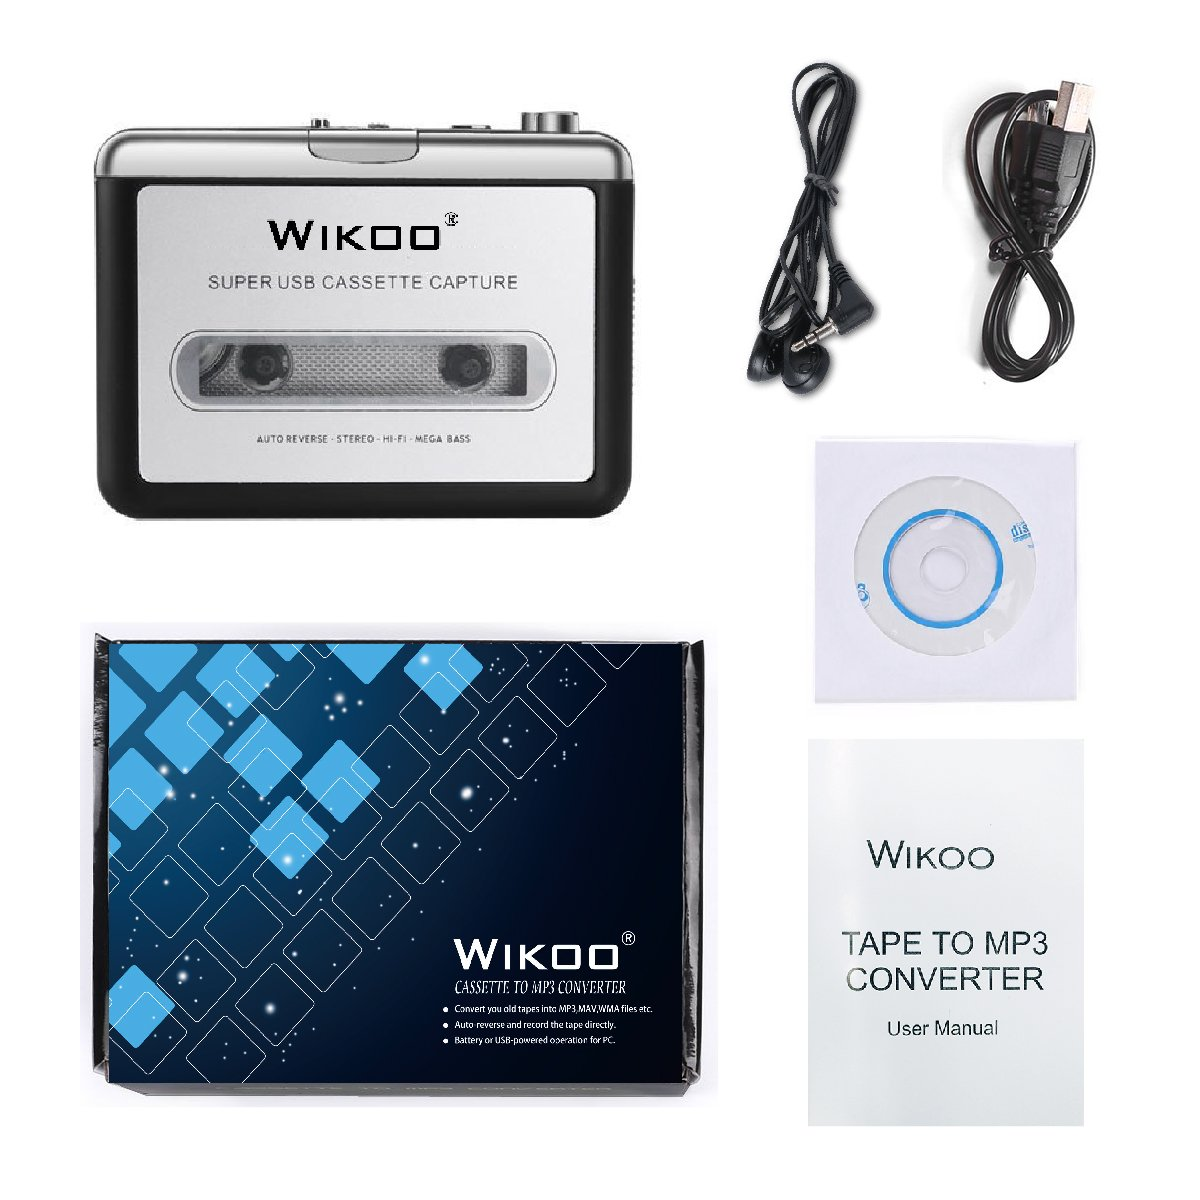 Cassette Tape to MP3 Converter, Wikoo USB Cassette Converter Portable  Cassette Player, Compatible with Laptops and PC, Convert Tape Cassettes to  MP3